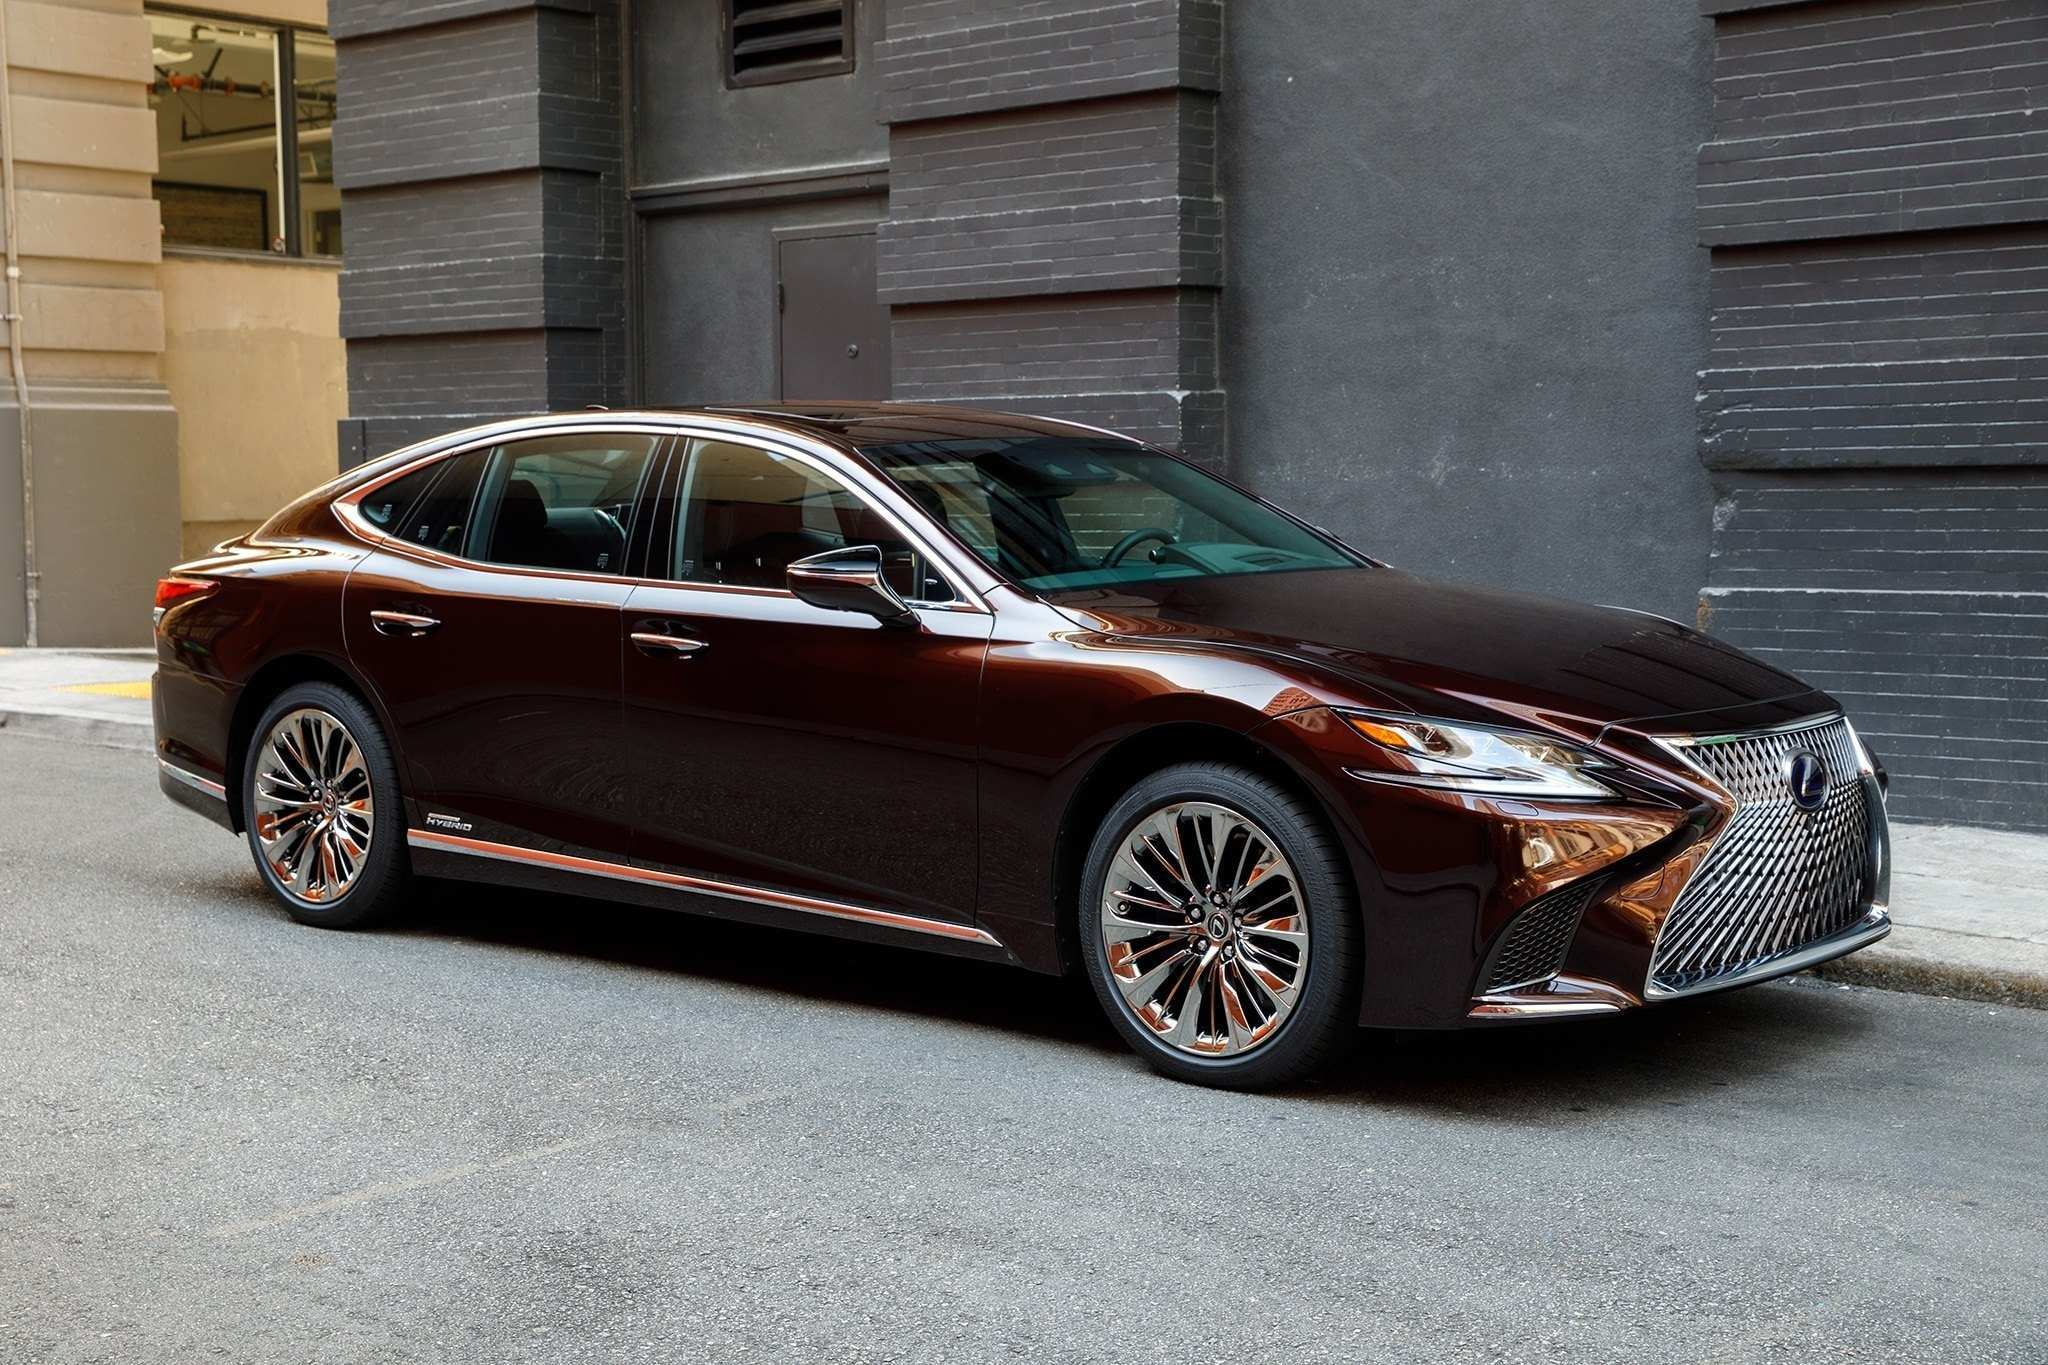 59 The Best 2019 Lexus Ls 460 Picture